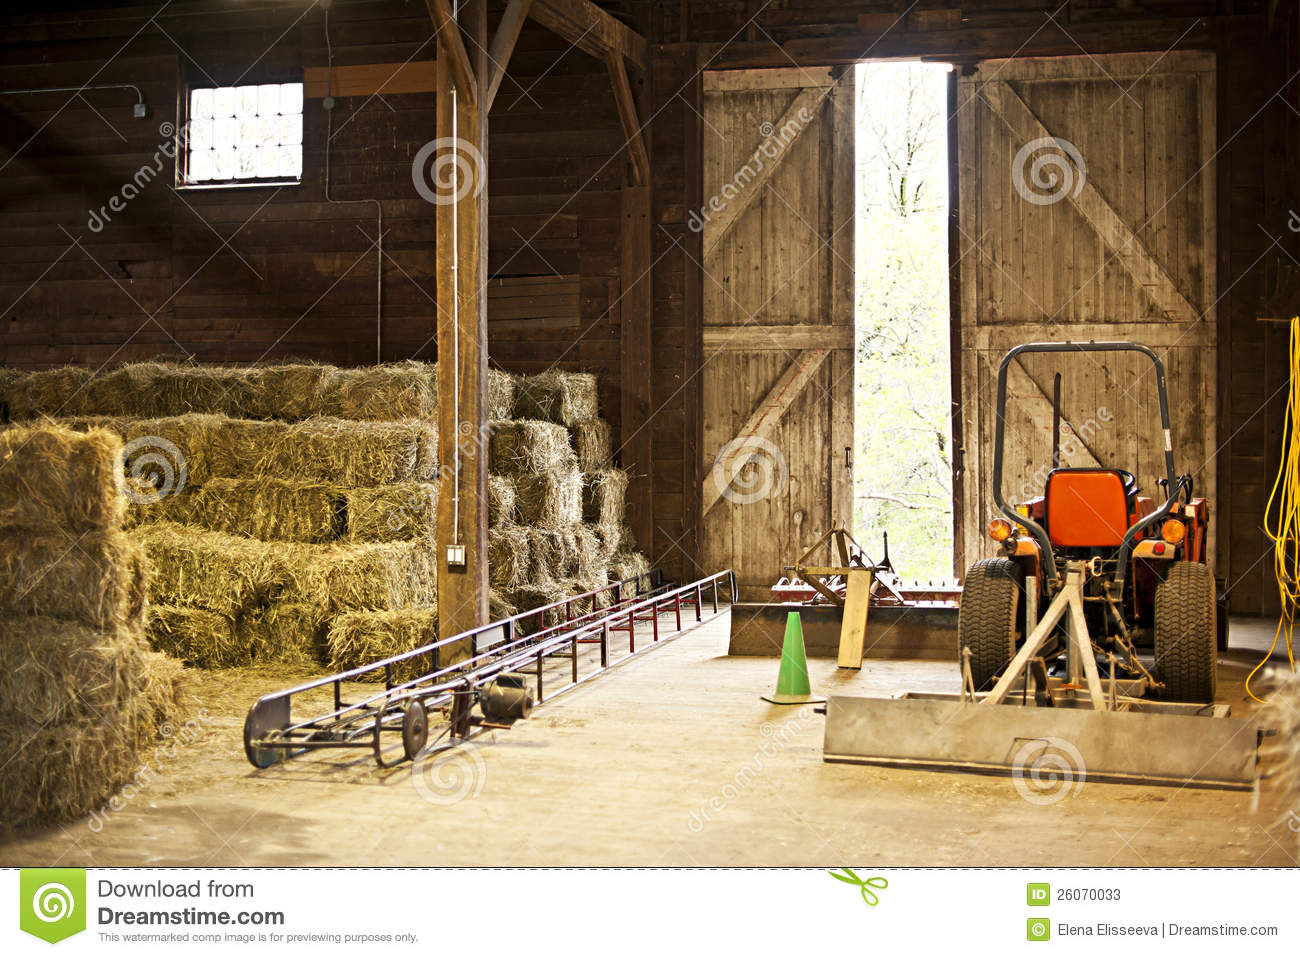 Barn Interior With Hay Bales And Farm Equipment Stock